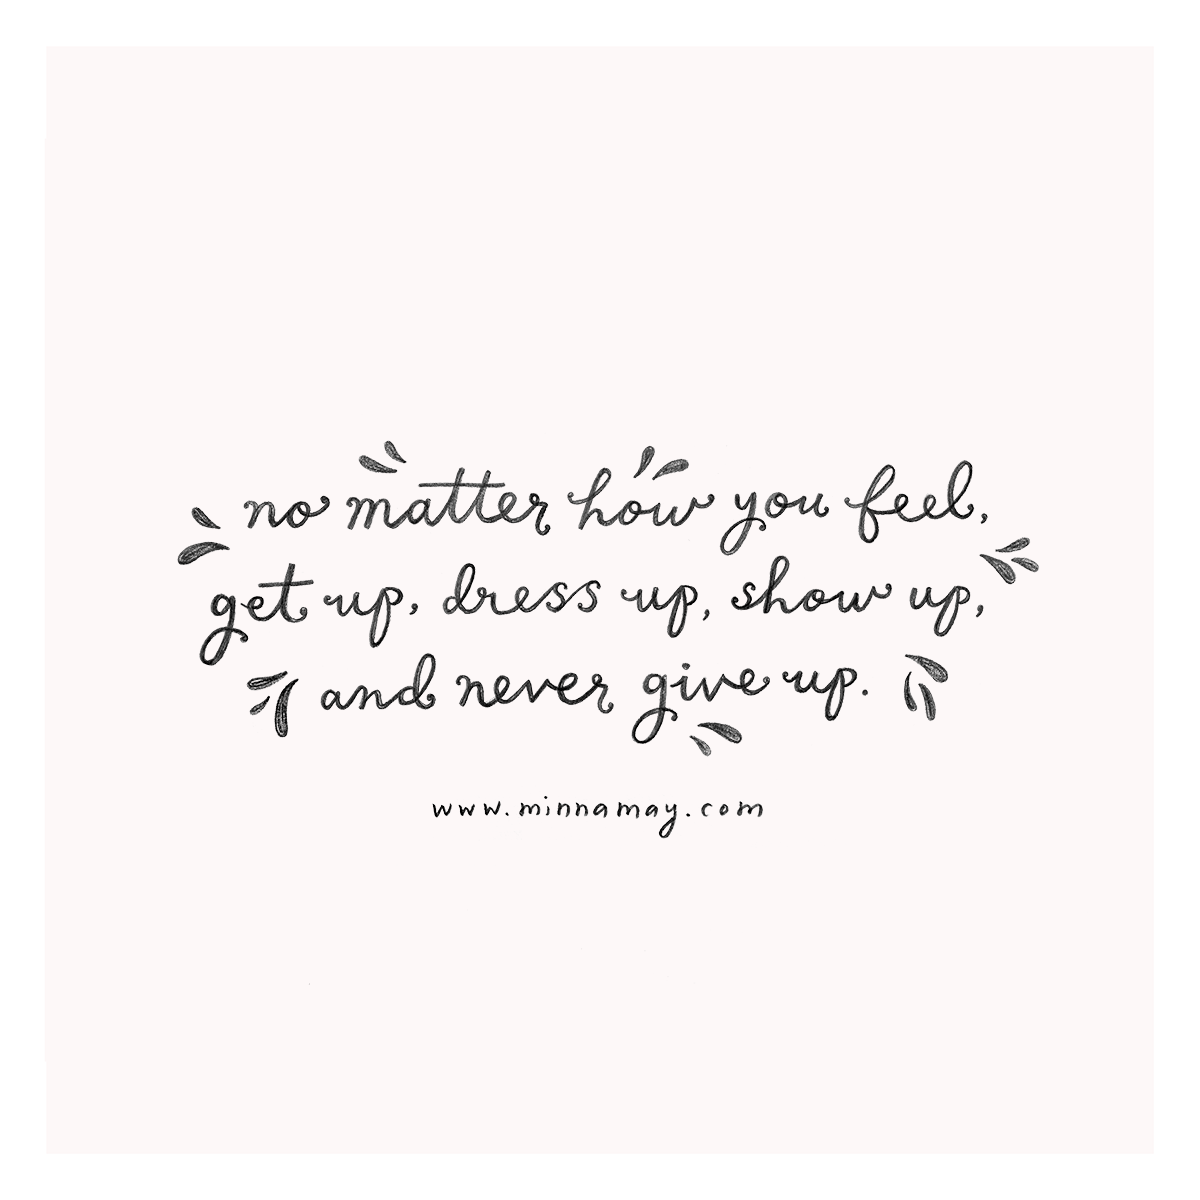 Black dress up quotes - Some Encouraging Words For Today Minna